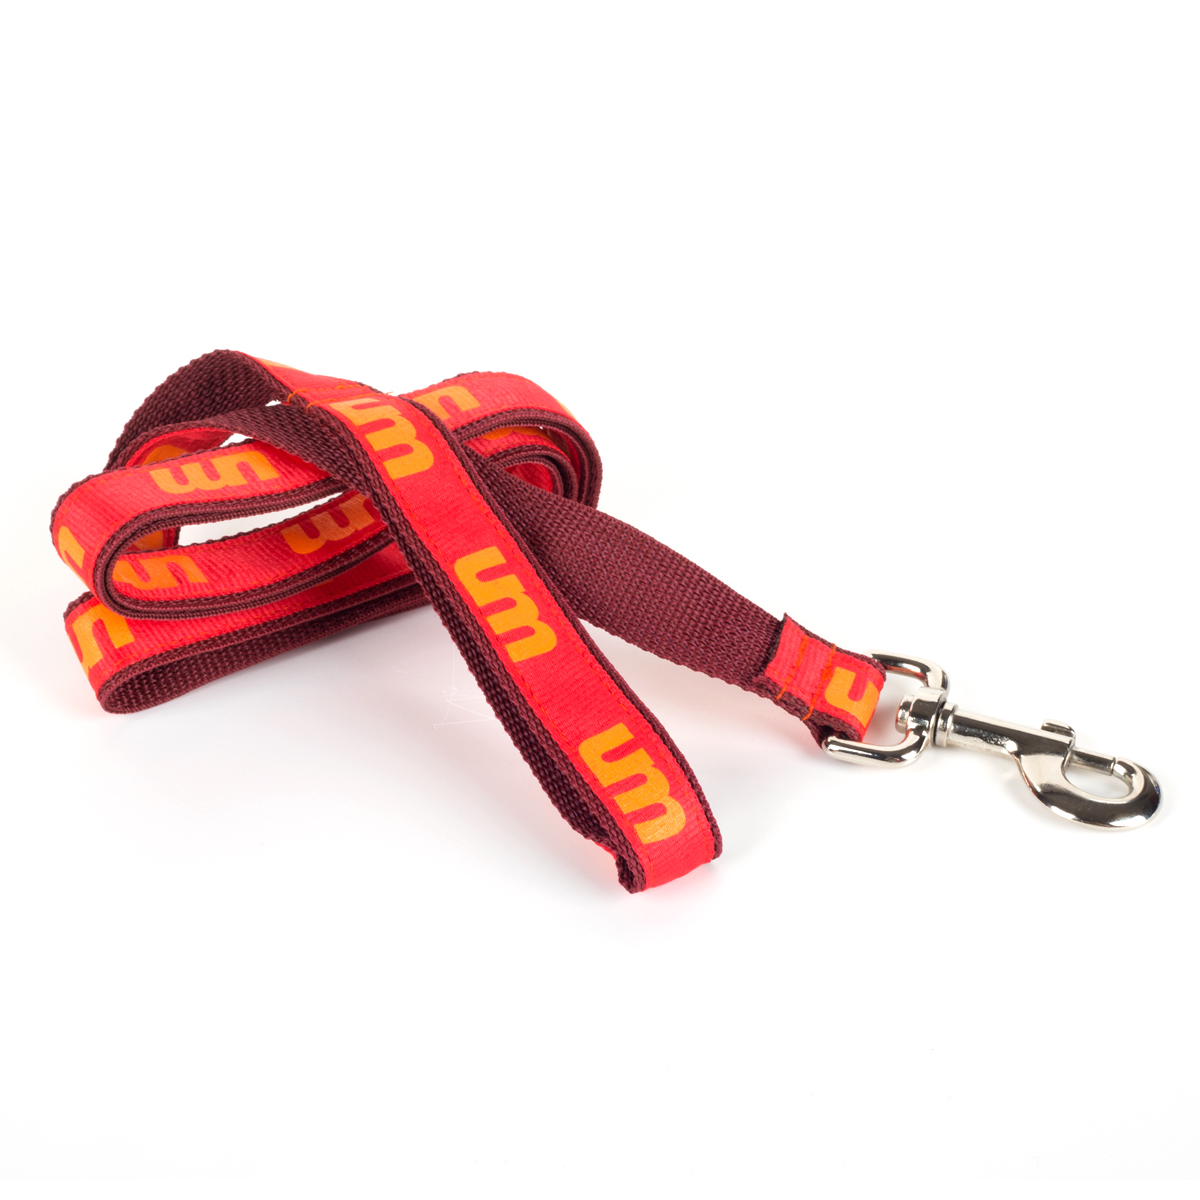 UM Dog Leash